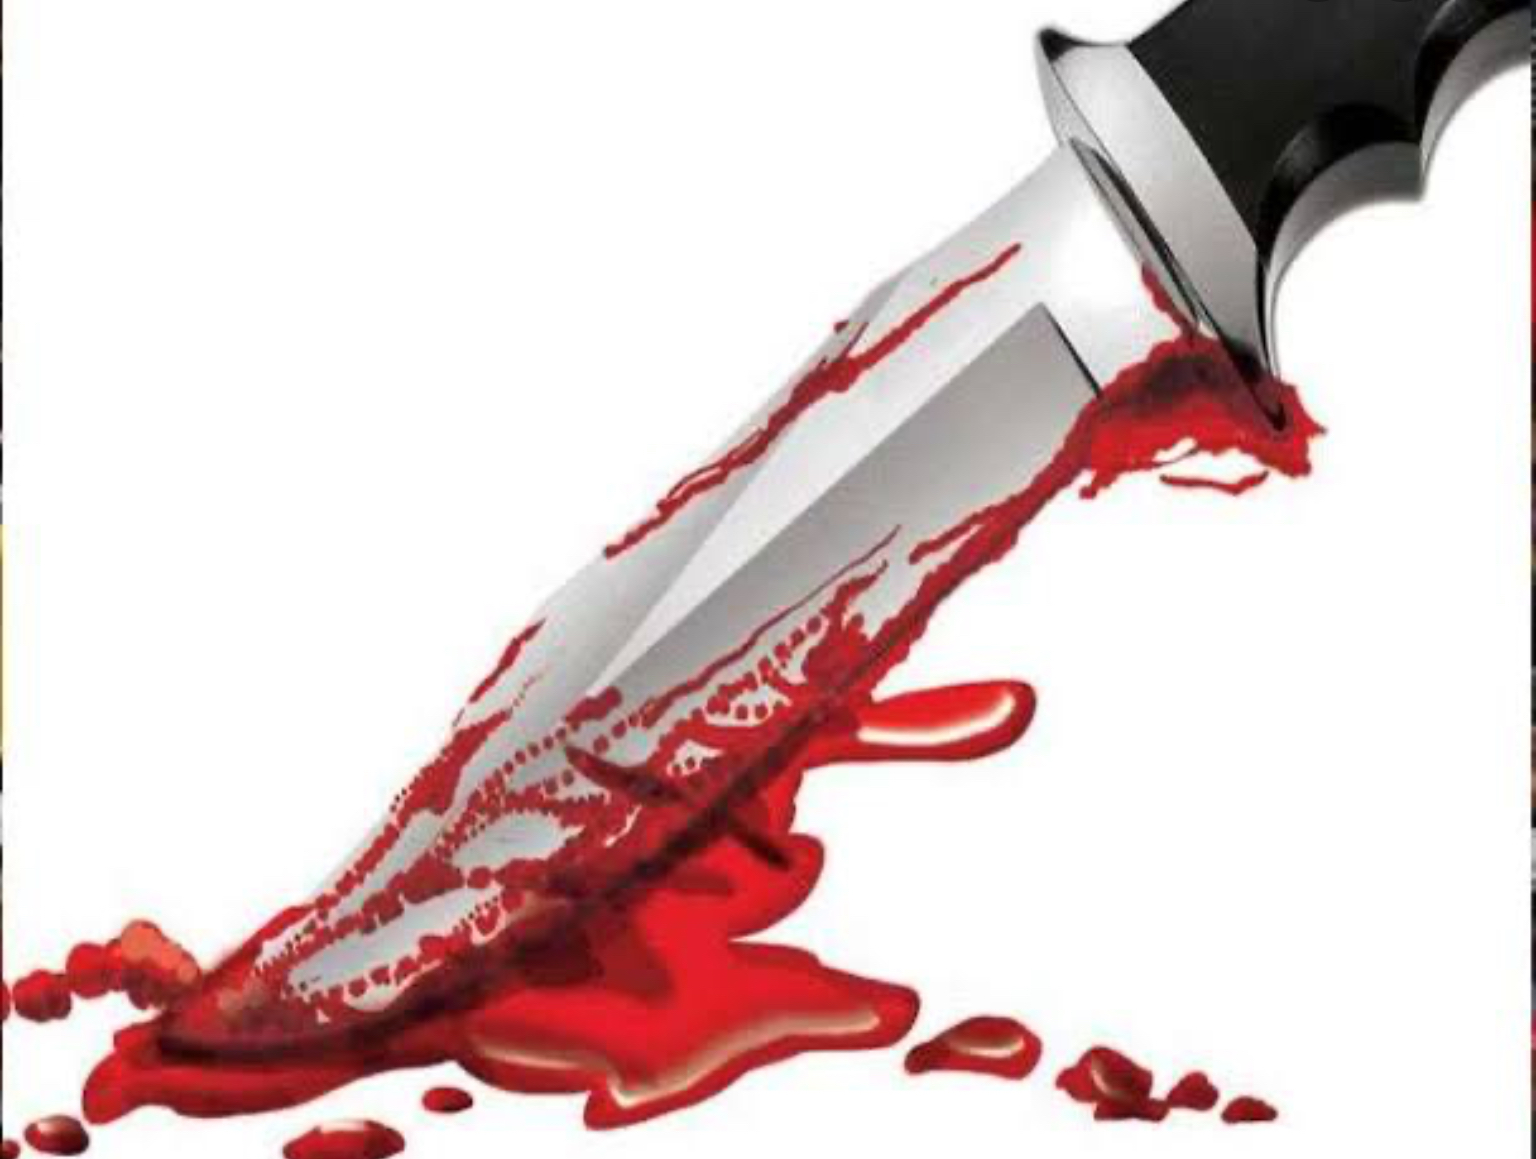 Man Stabs Chief Imam To Death For Sleeping With Wife